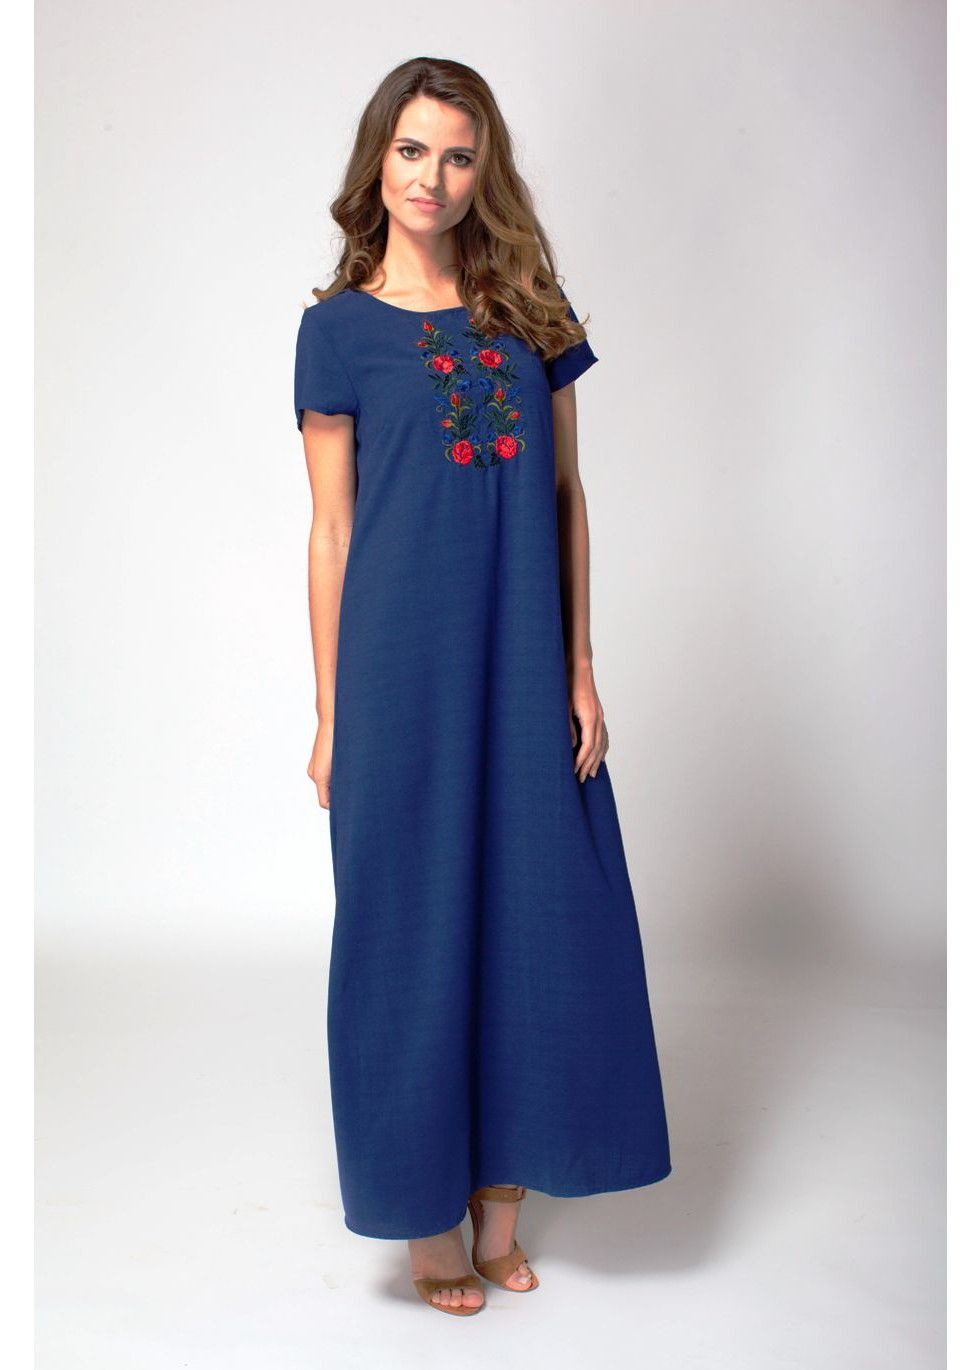 Pin on ModLi A Maxi for Every Occasion